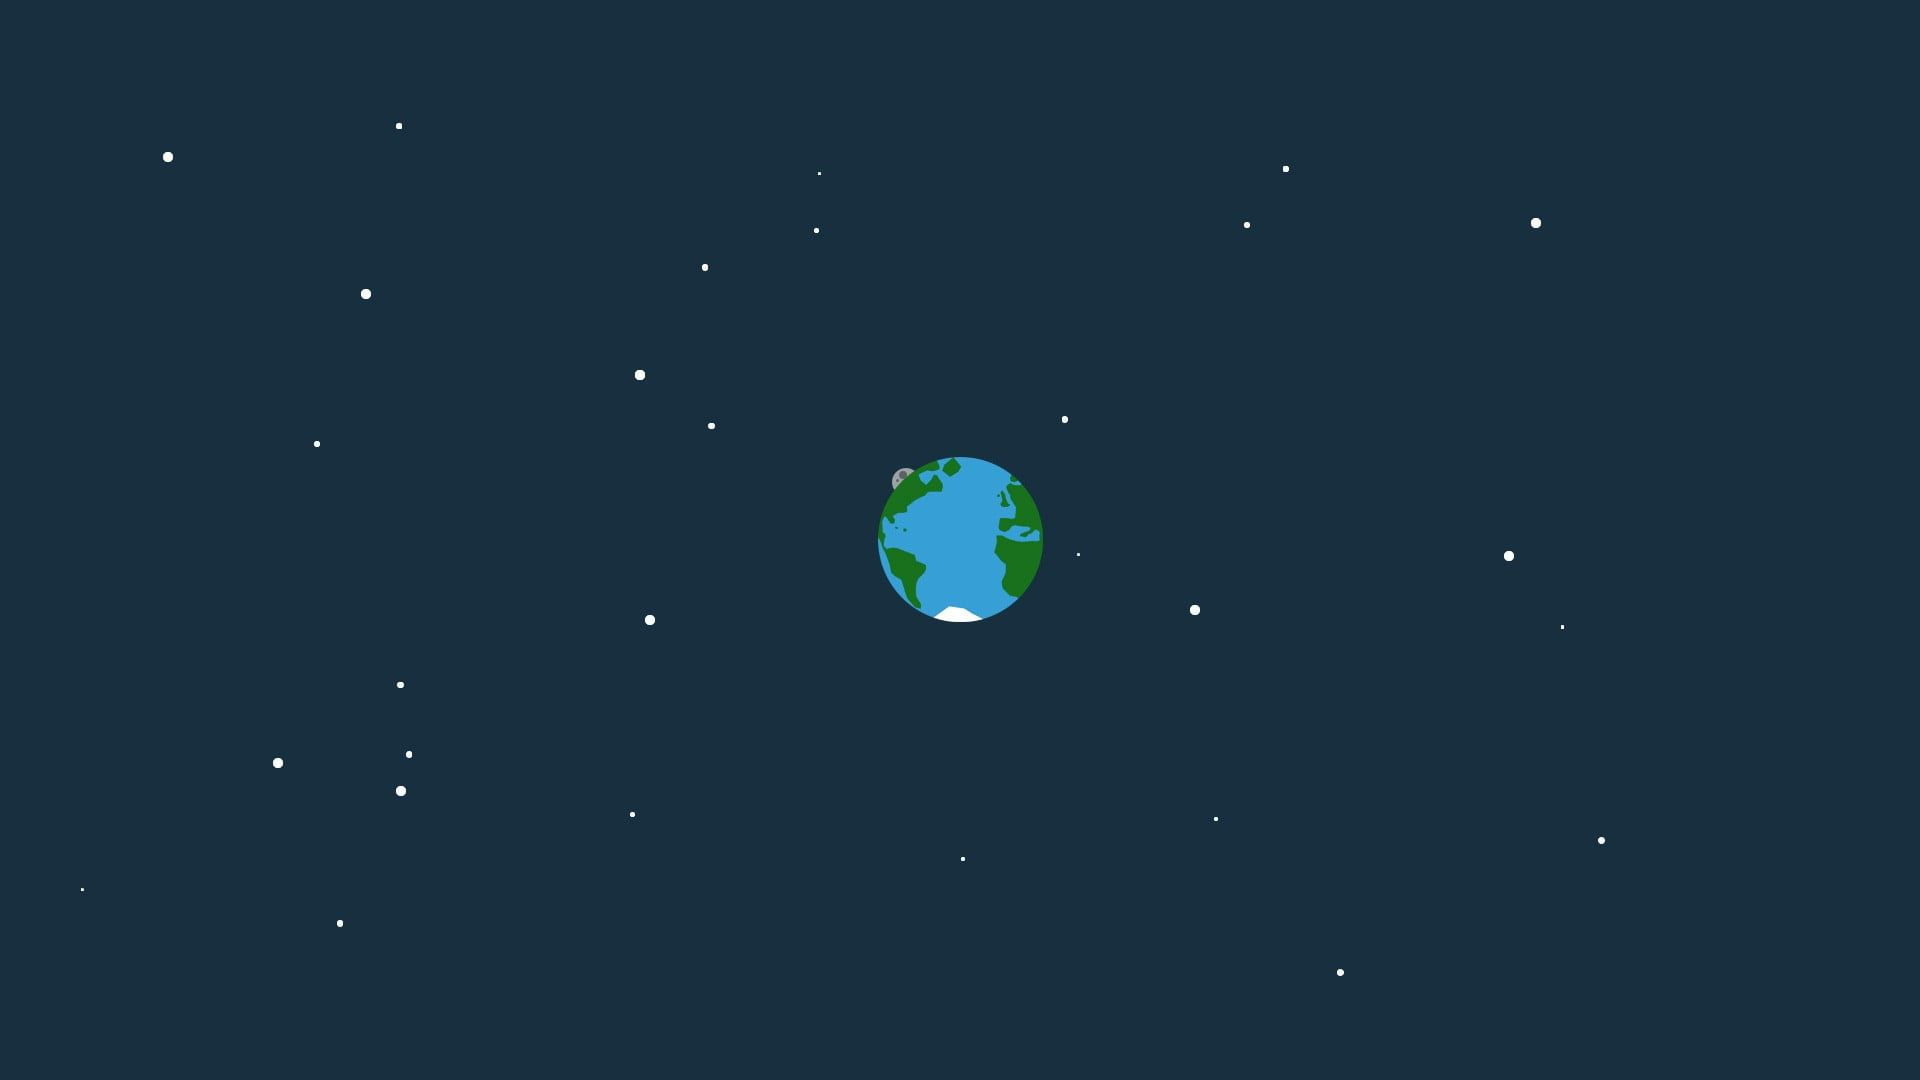 Earth Space Minimalism Sky Design Flat Design Minimal Art Artwork Nigh In 2020 Minimalist Desktop Wallpaper Desktop Wallpaper Simple Desktop Wallpaper Macbook